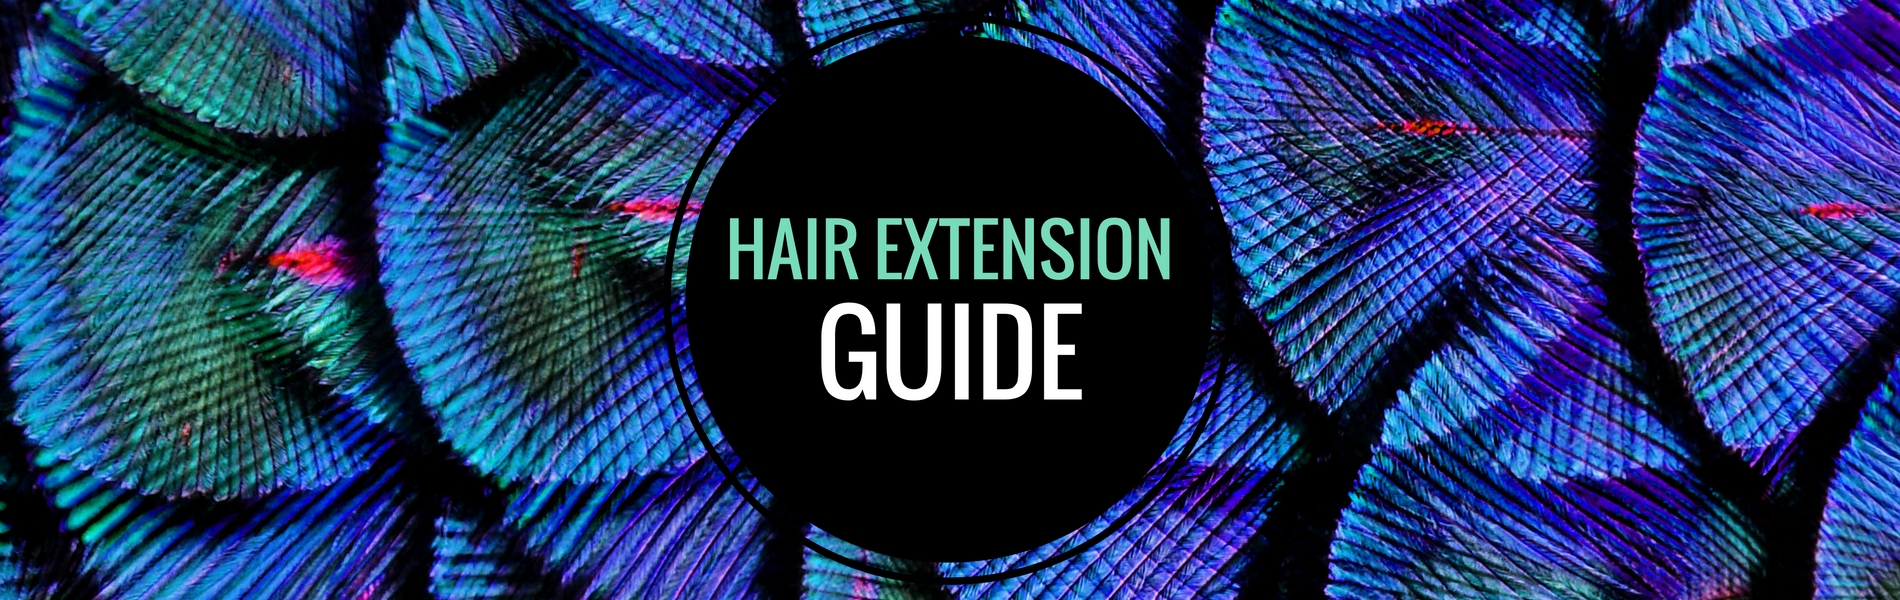 Hair Extension Guide_Banner